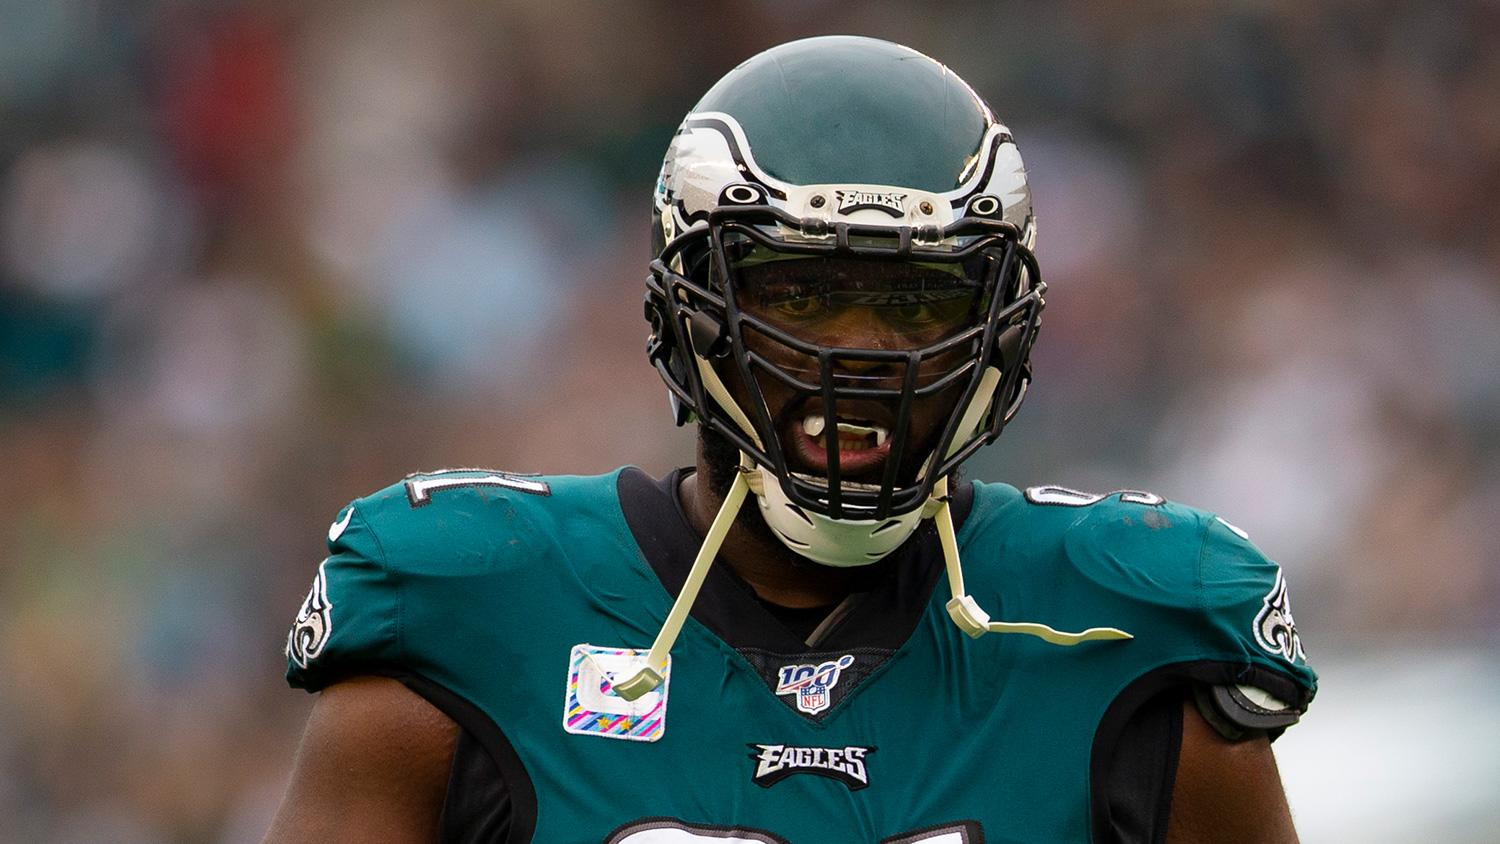 Eagles injury update: Fletcher Cox misses 2nd straight day of practice to begin Week 3